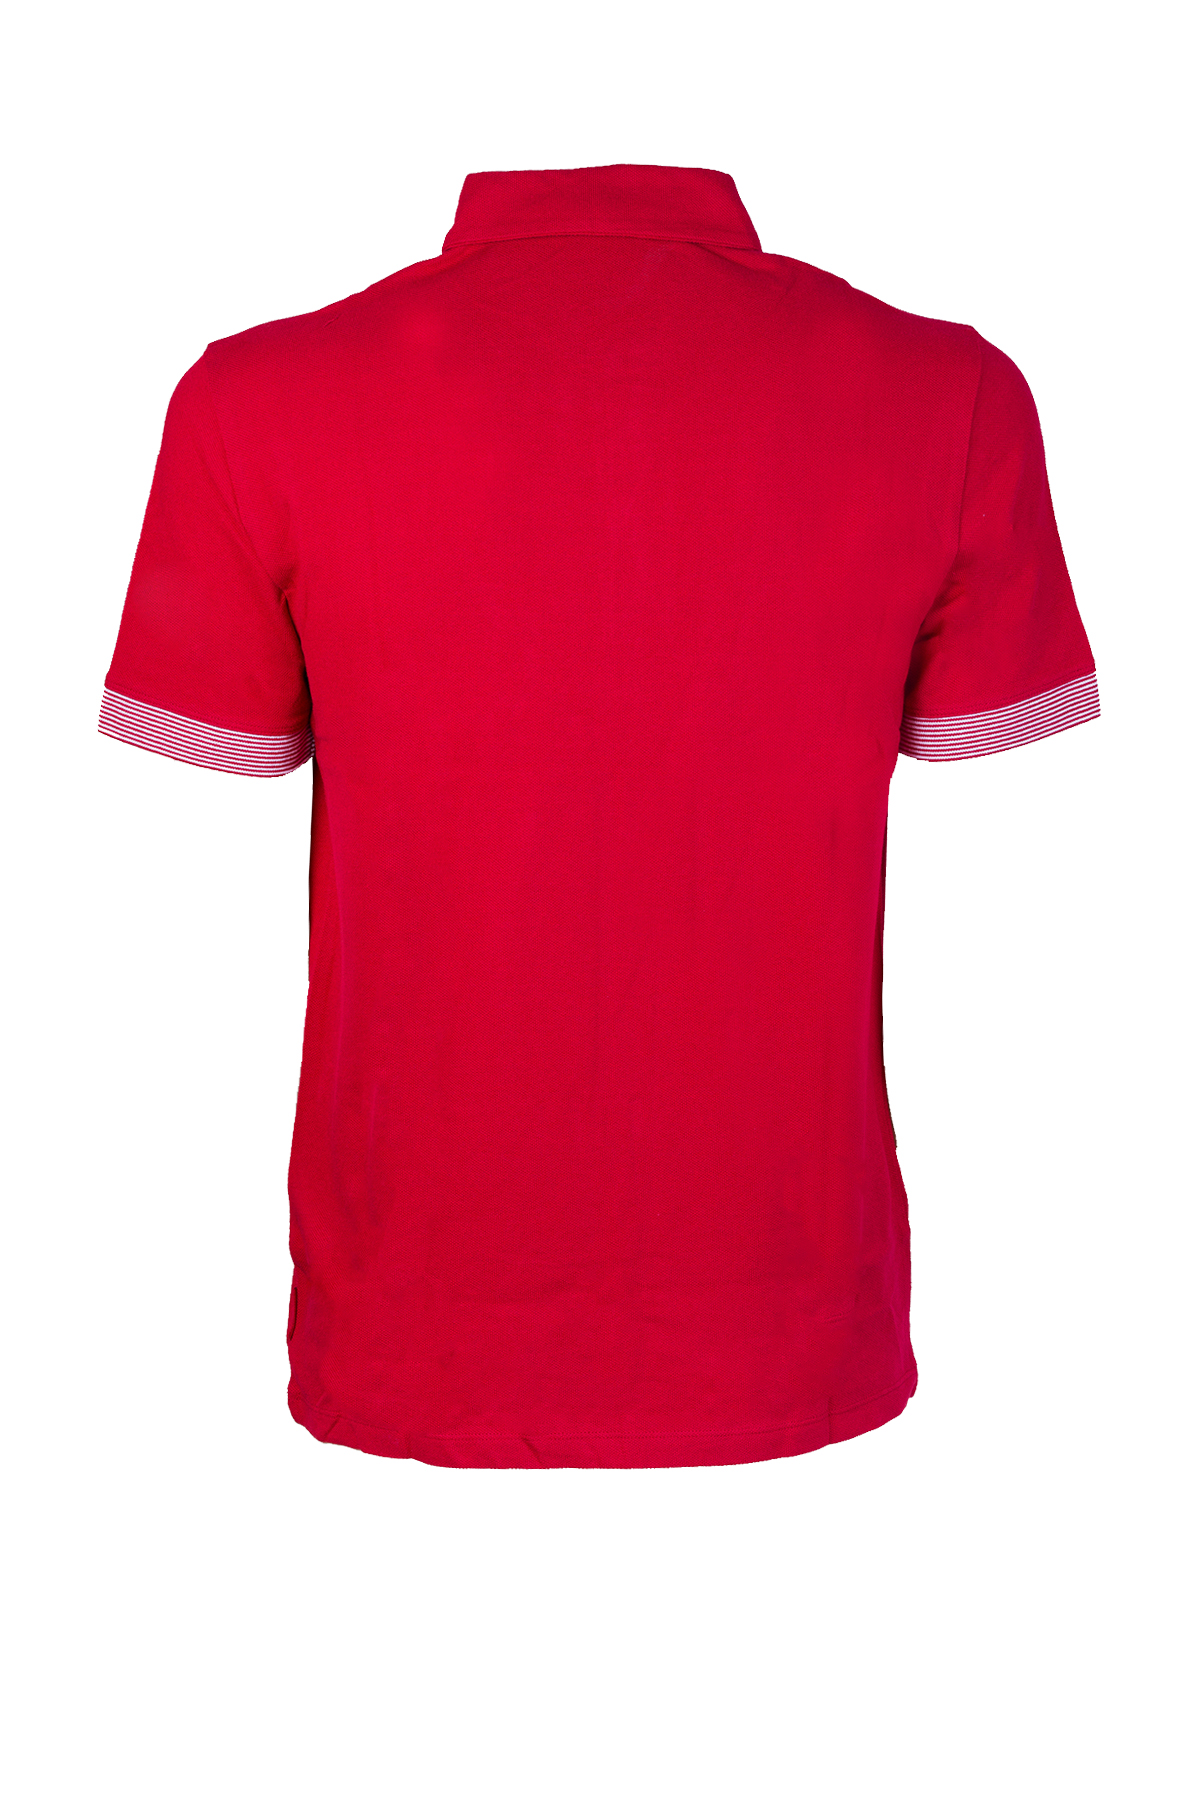 POLO CON MICRO RIGHE AX ARMANI EXCHANGE | Polo | 8NZF73Z8M5Z1435CHILIPEPPER